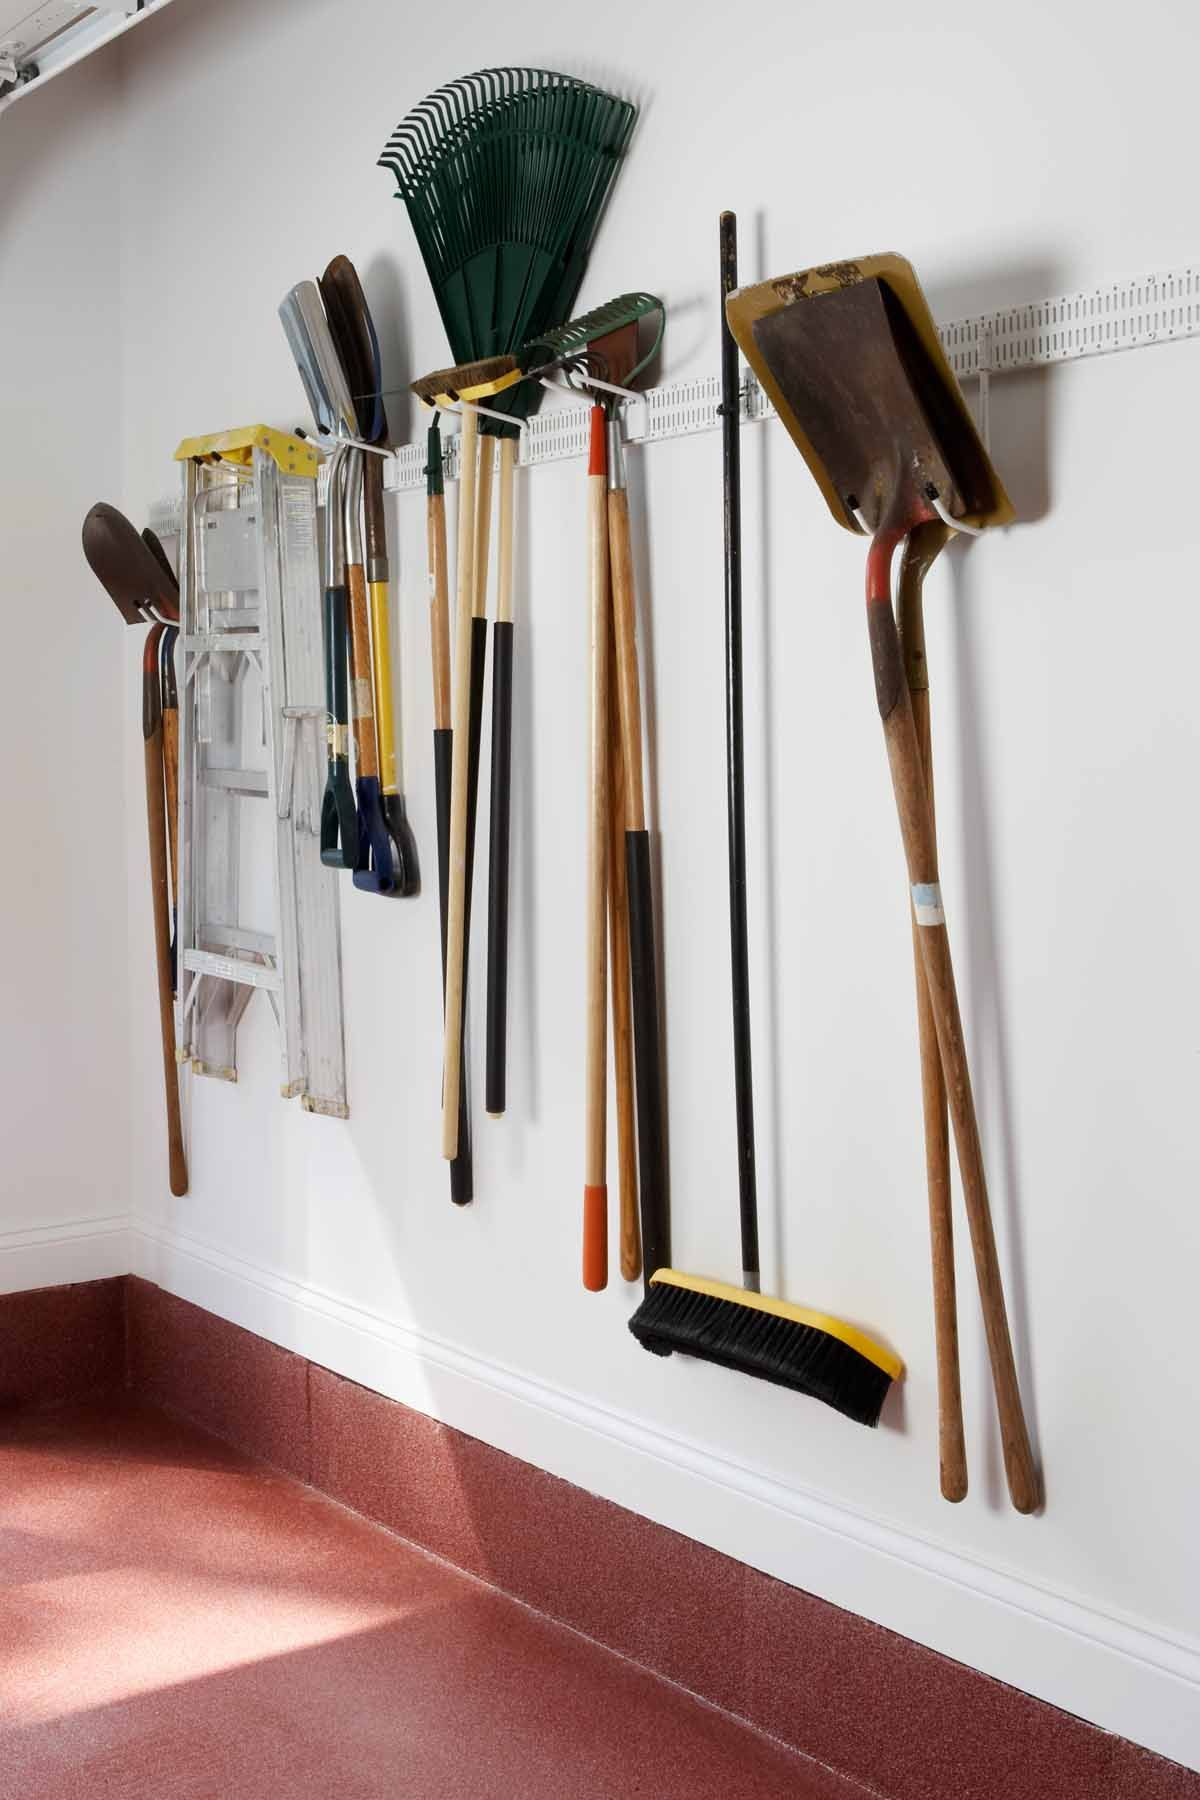 Garden Tool Maintenance Daily Of Long Handled Tools You 24 Garage  Organization Ideas Storage Solutions And Tips For Organizing Your Garge ...